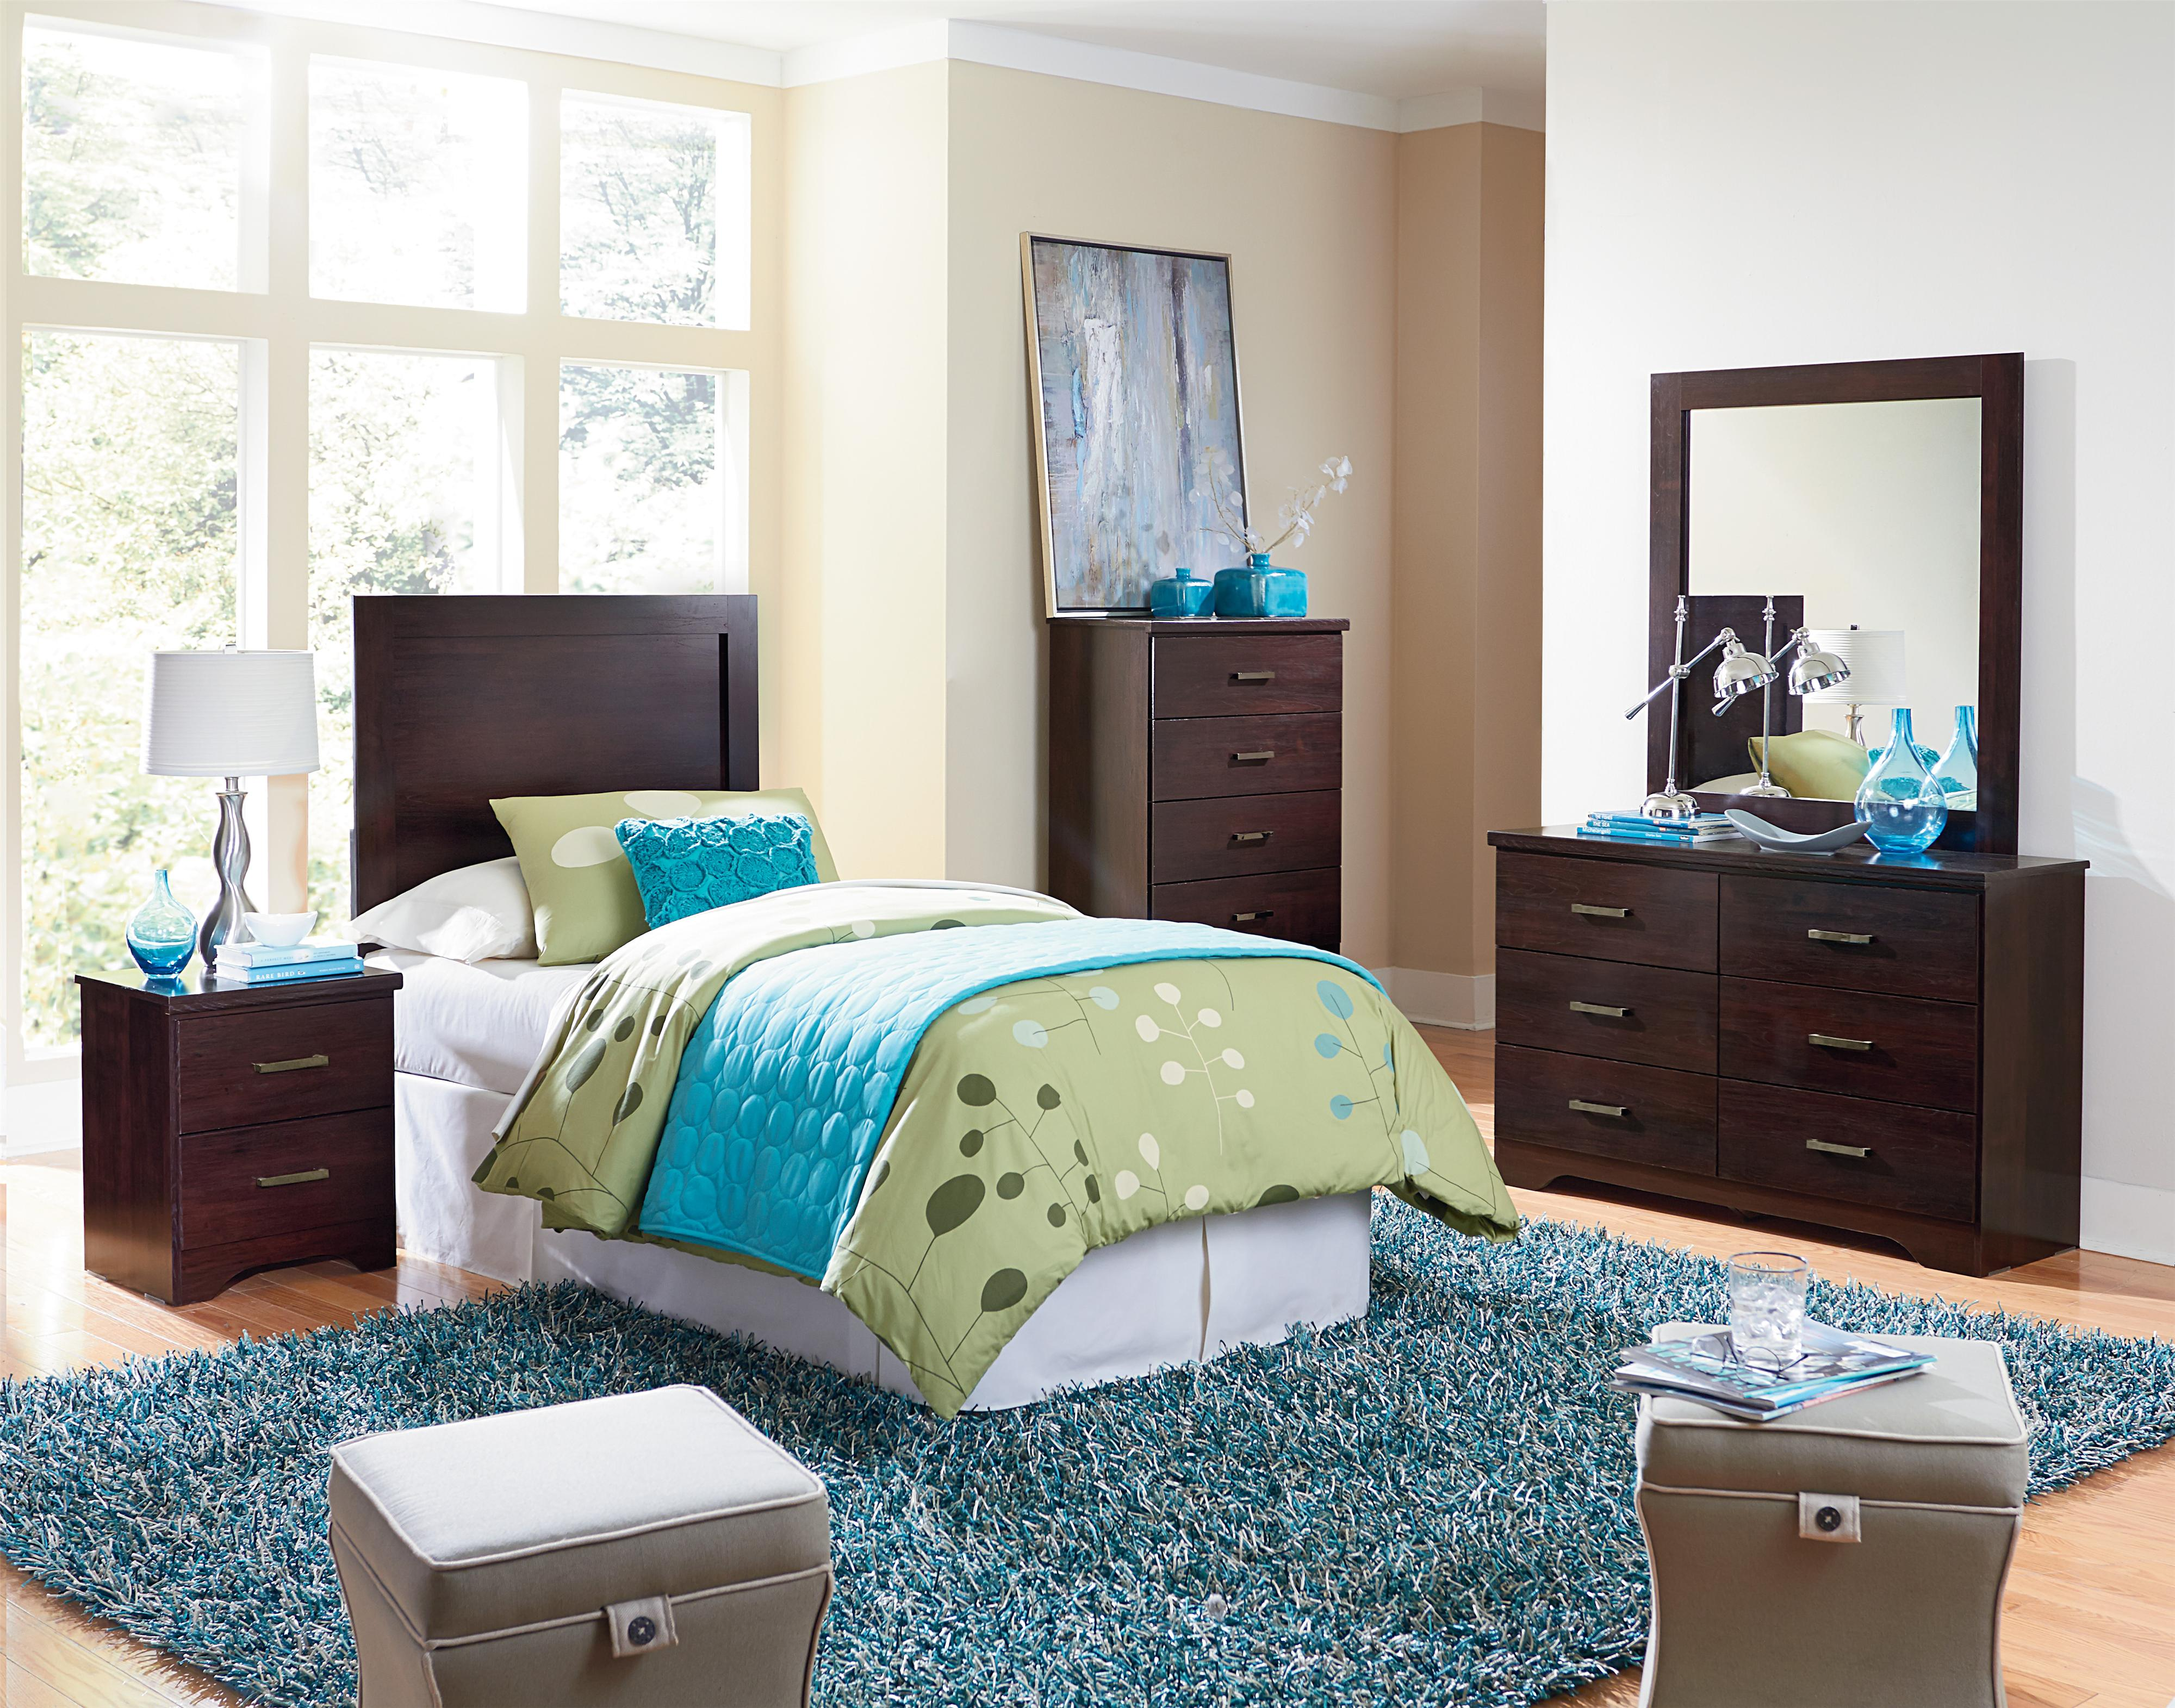 Standard Furniture Glenshire Full/ Queen Bedroom Group - Item Number: 52600 FQ Bedroom Group